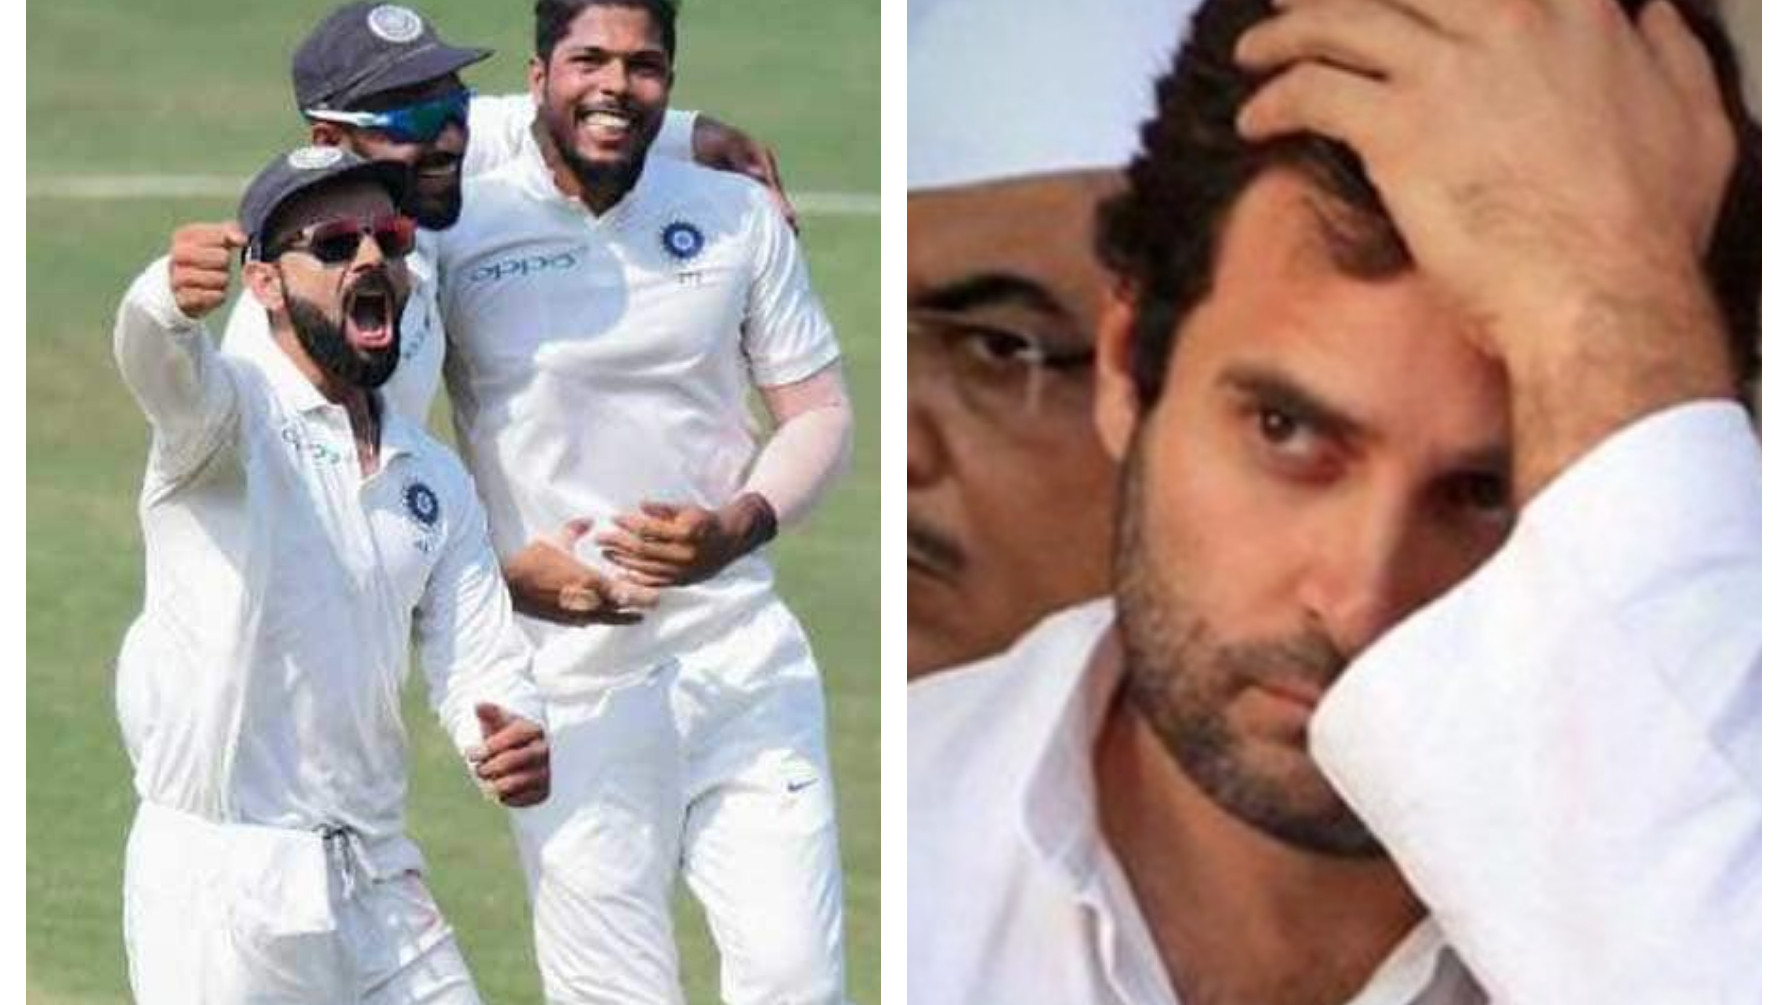 Congress party gets roasted for their congratulatory tweet to Team India